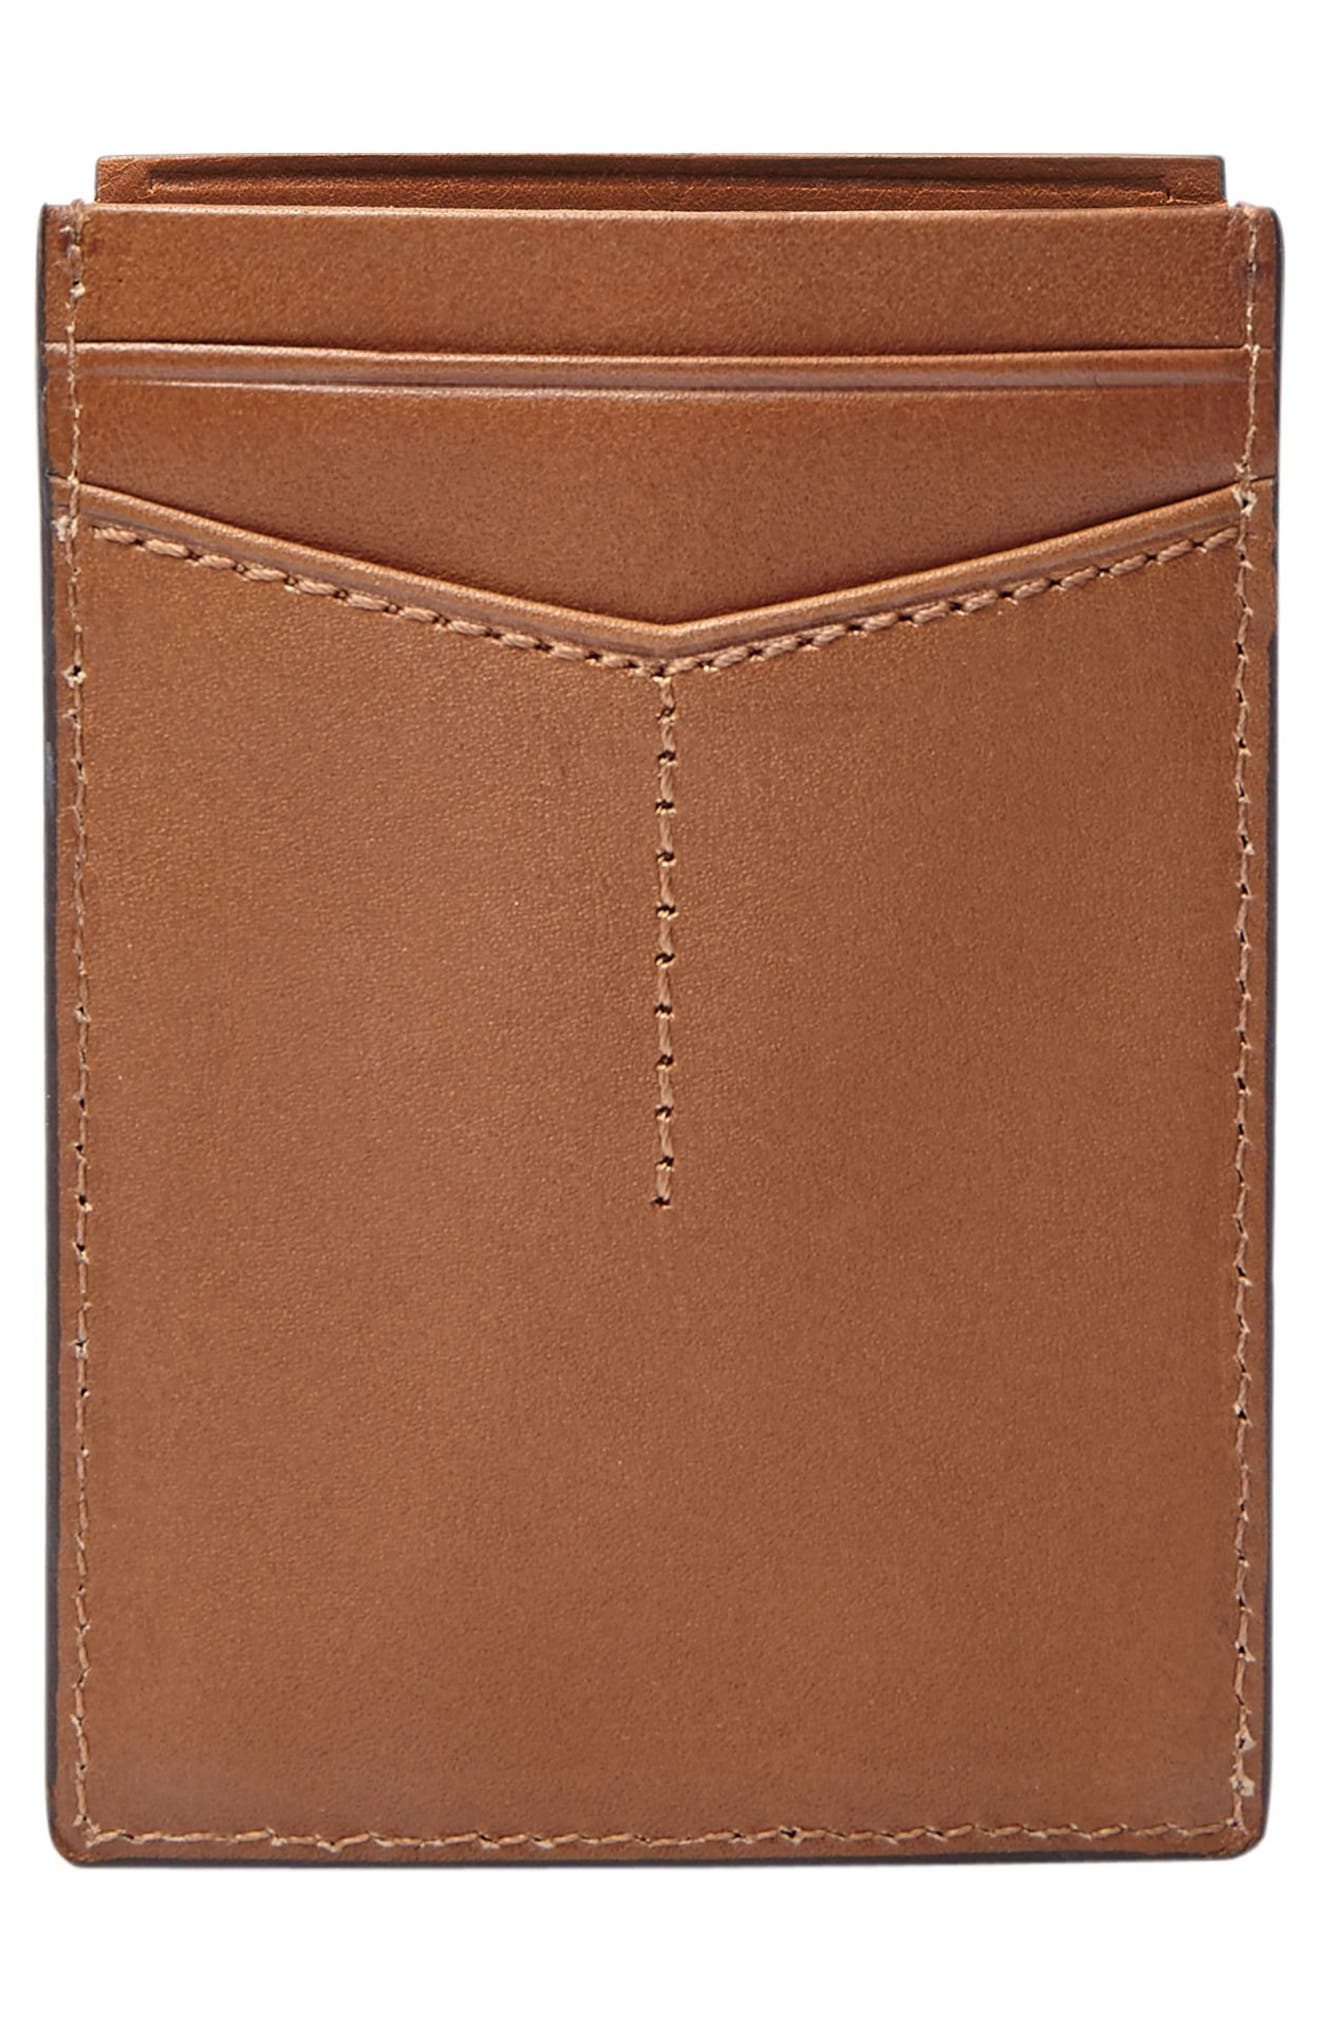 Paul Leather Card Case,                             Alternate thumbnail 2, color,                             Cognac